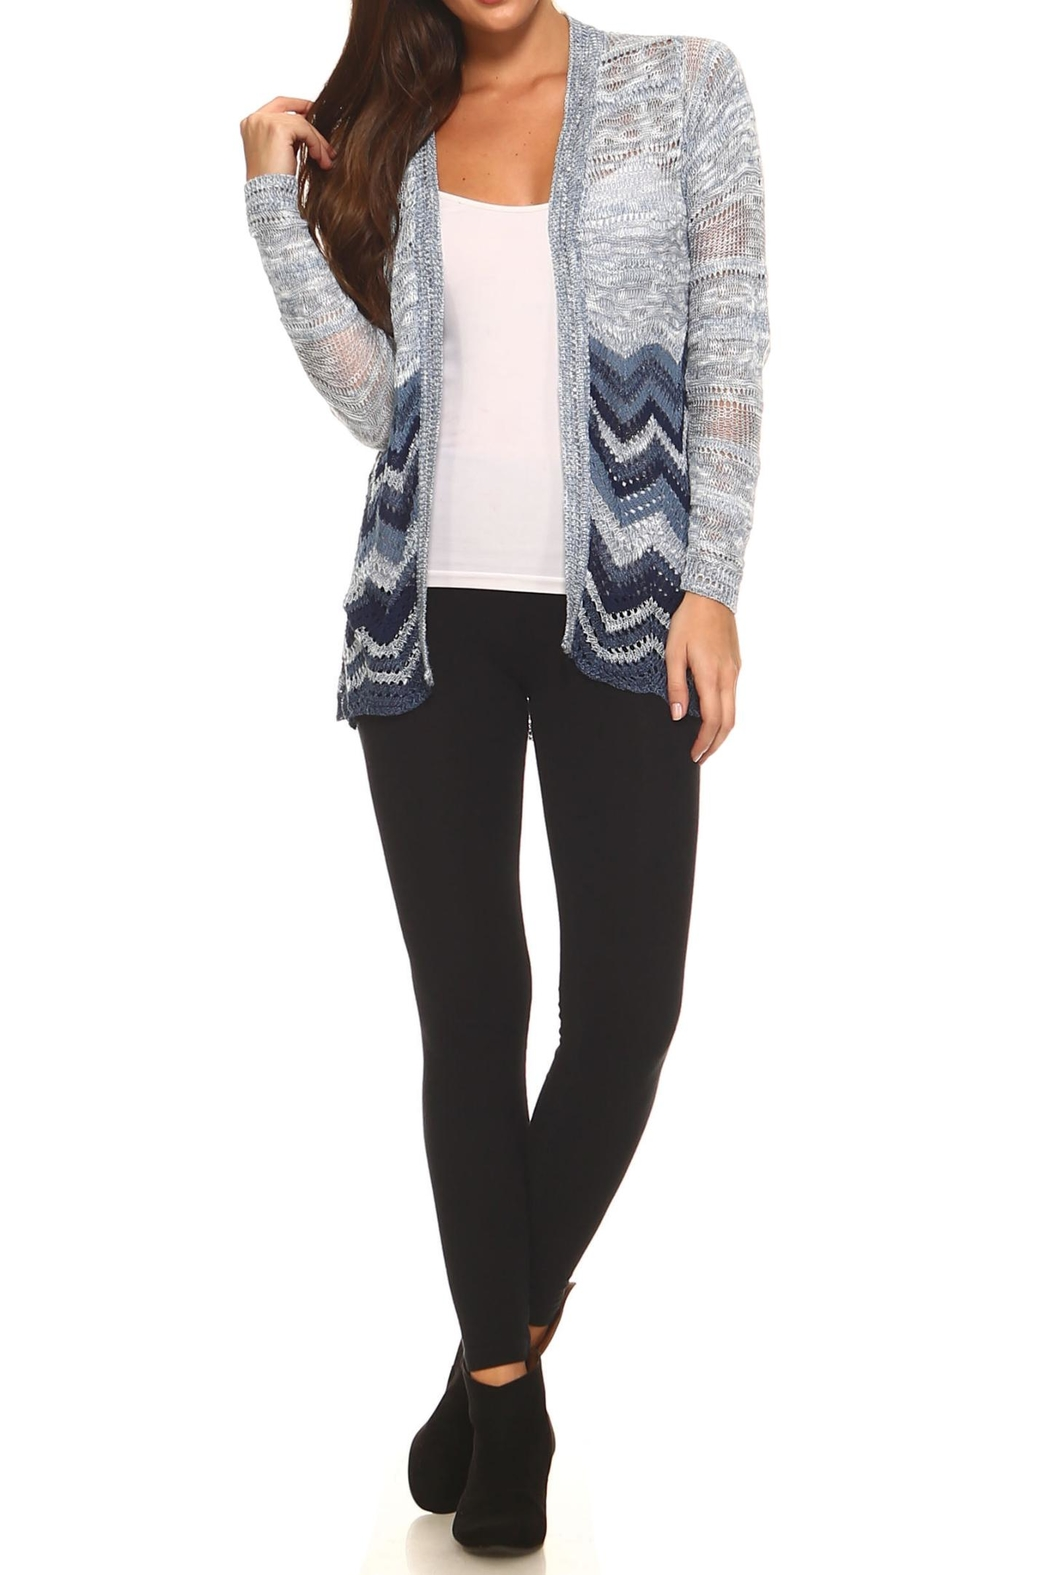 rxb Chevron Print Cardigan - Side Cropped Image